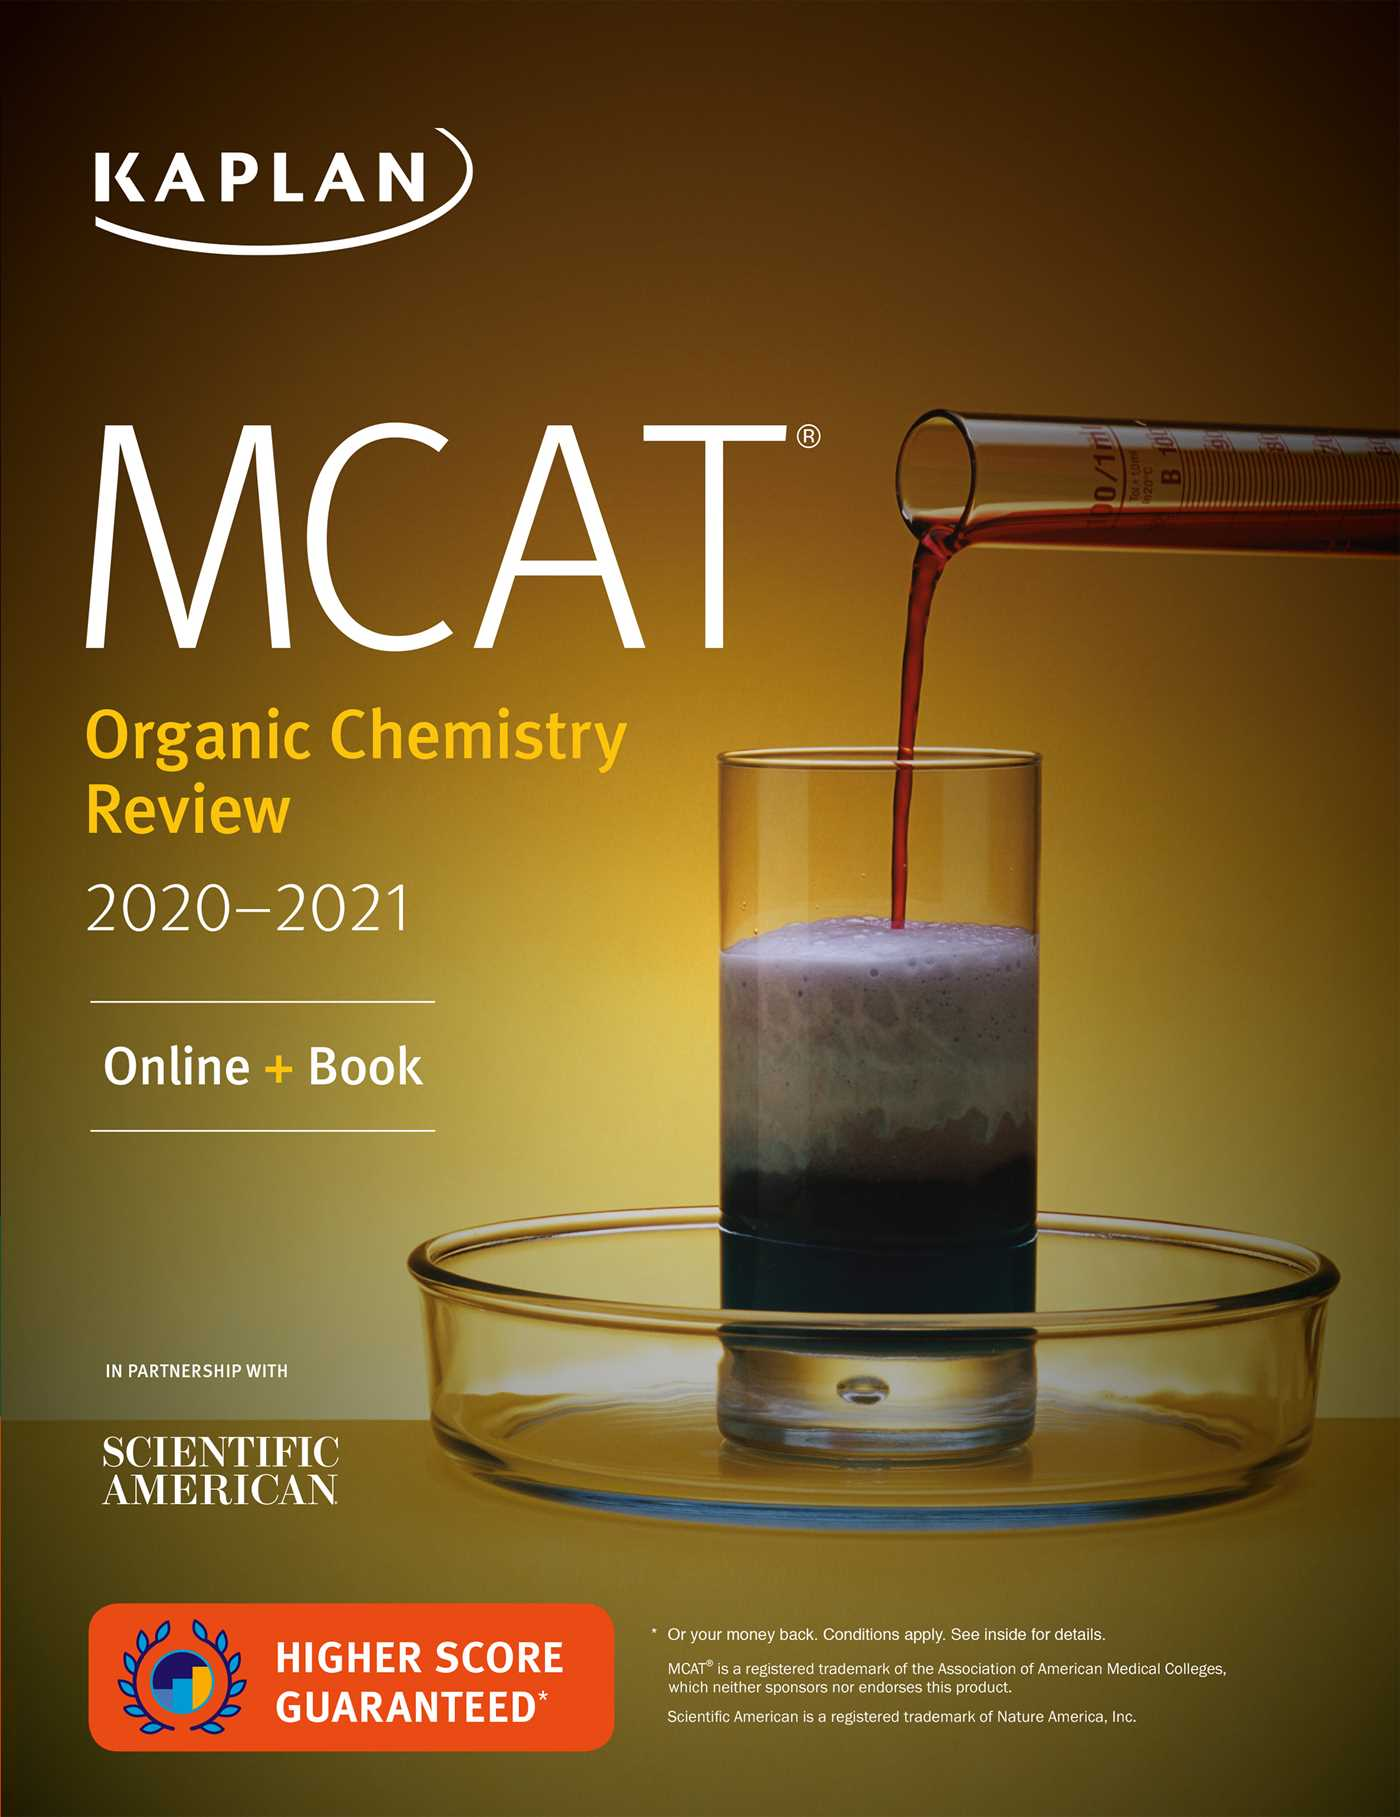 MCAT Organic Chemistry Review 2020-2021 | Book by Kaplan